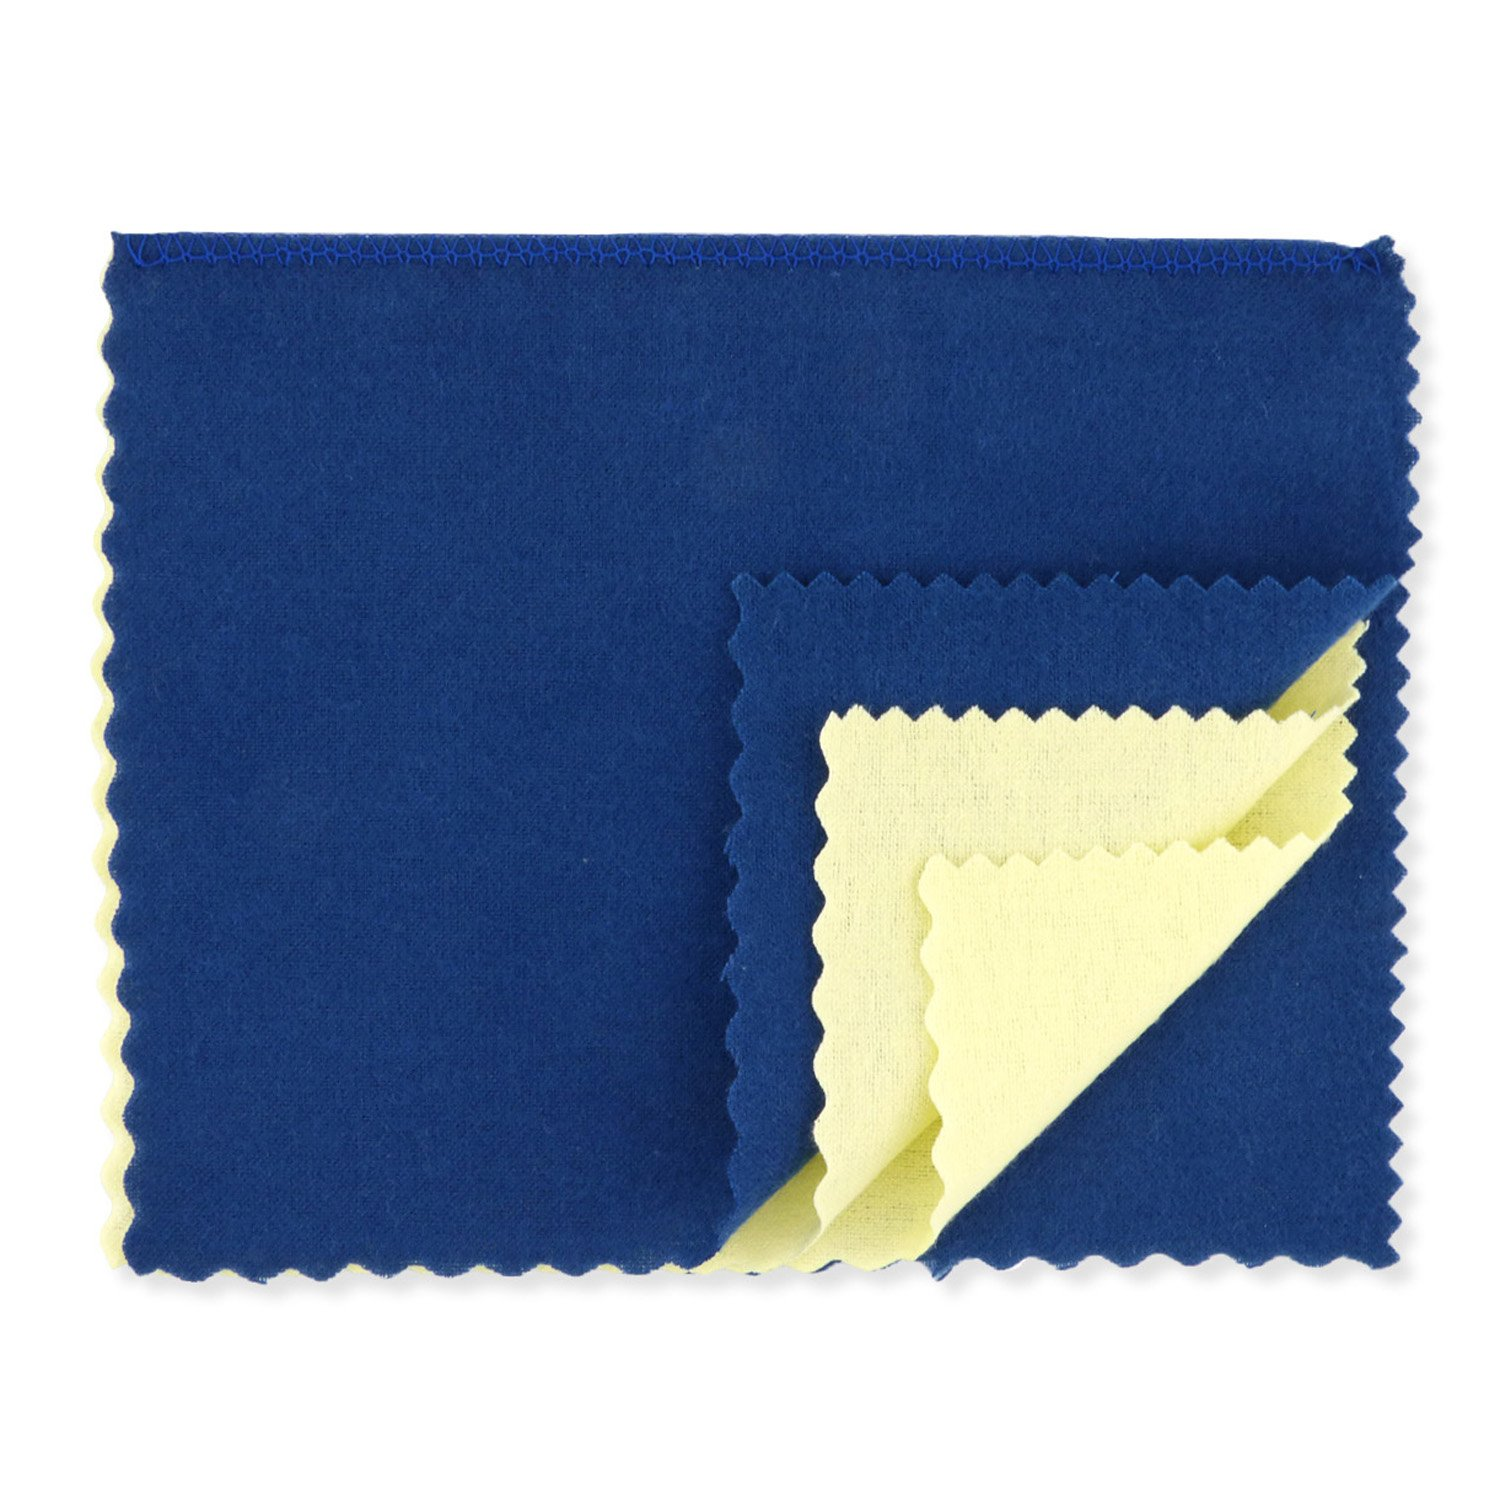 Jewelry Cleaning and Polishing Cloth for Gold, Silver, Platinum, Brass Metals 12'' x 7.5''